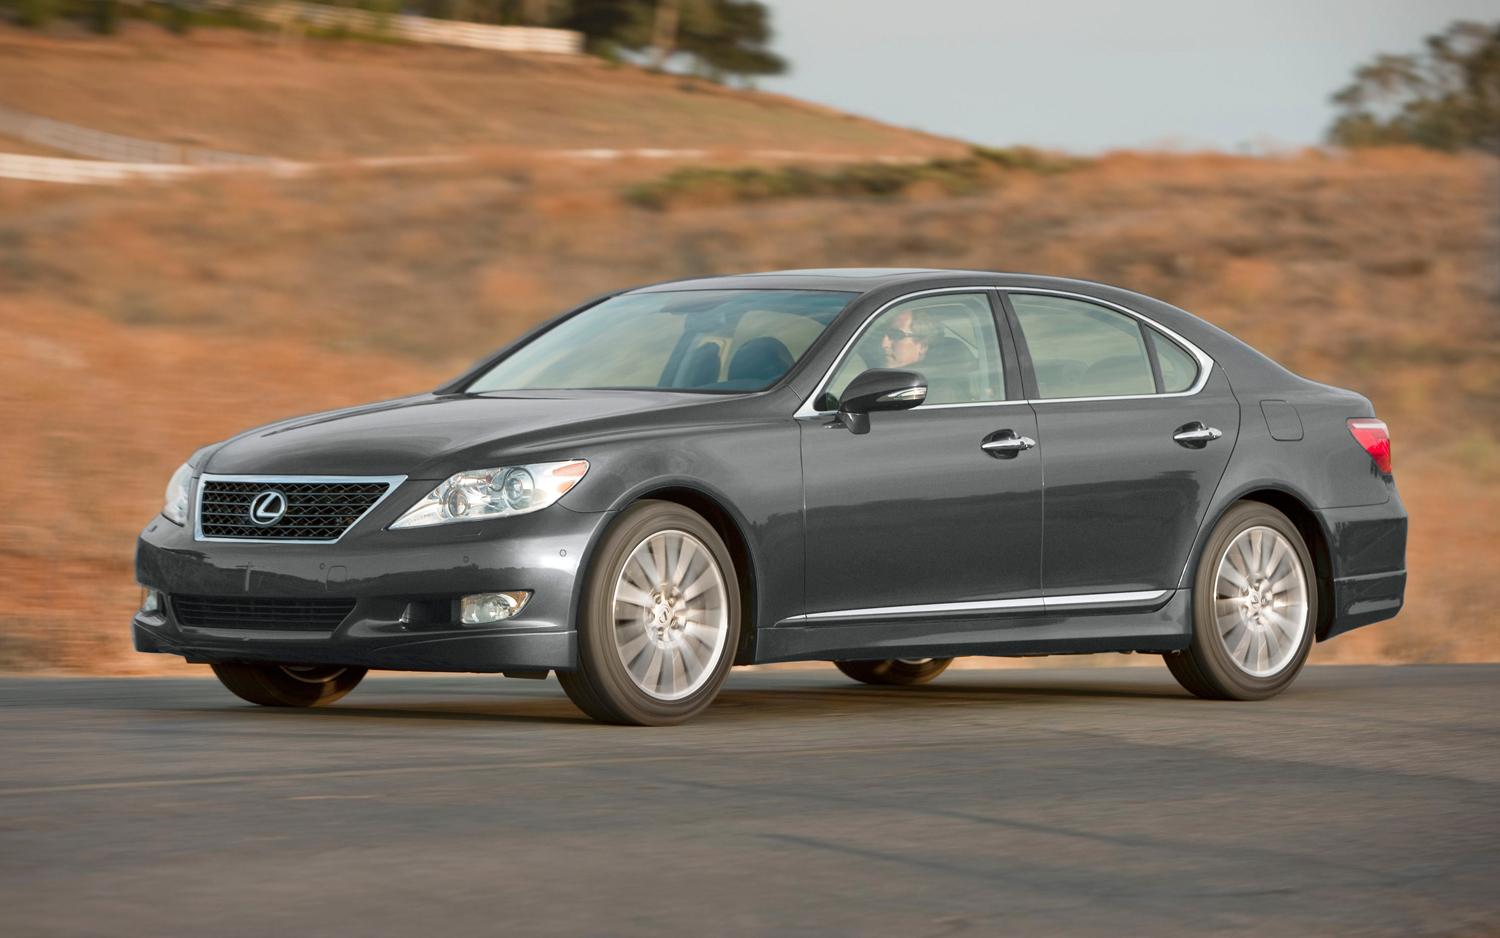 Lexus LS 460 2012 photo - 6